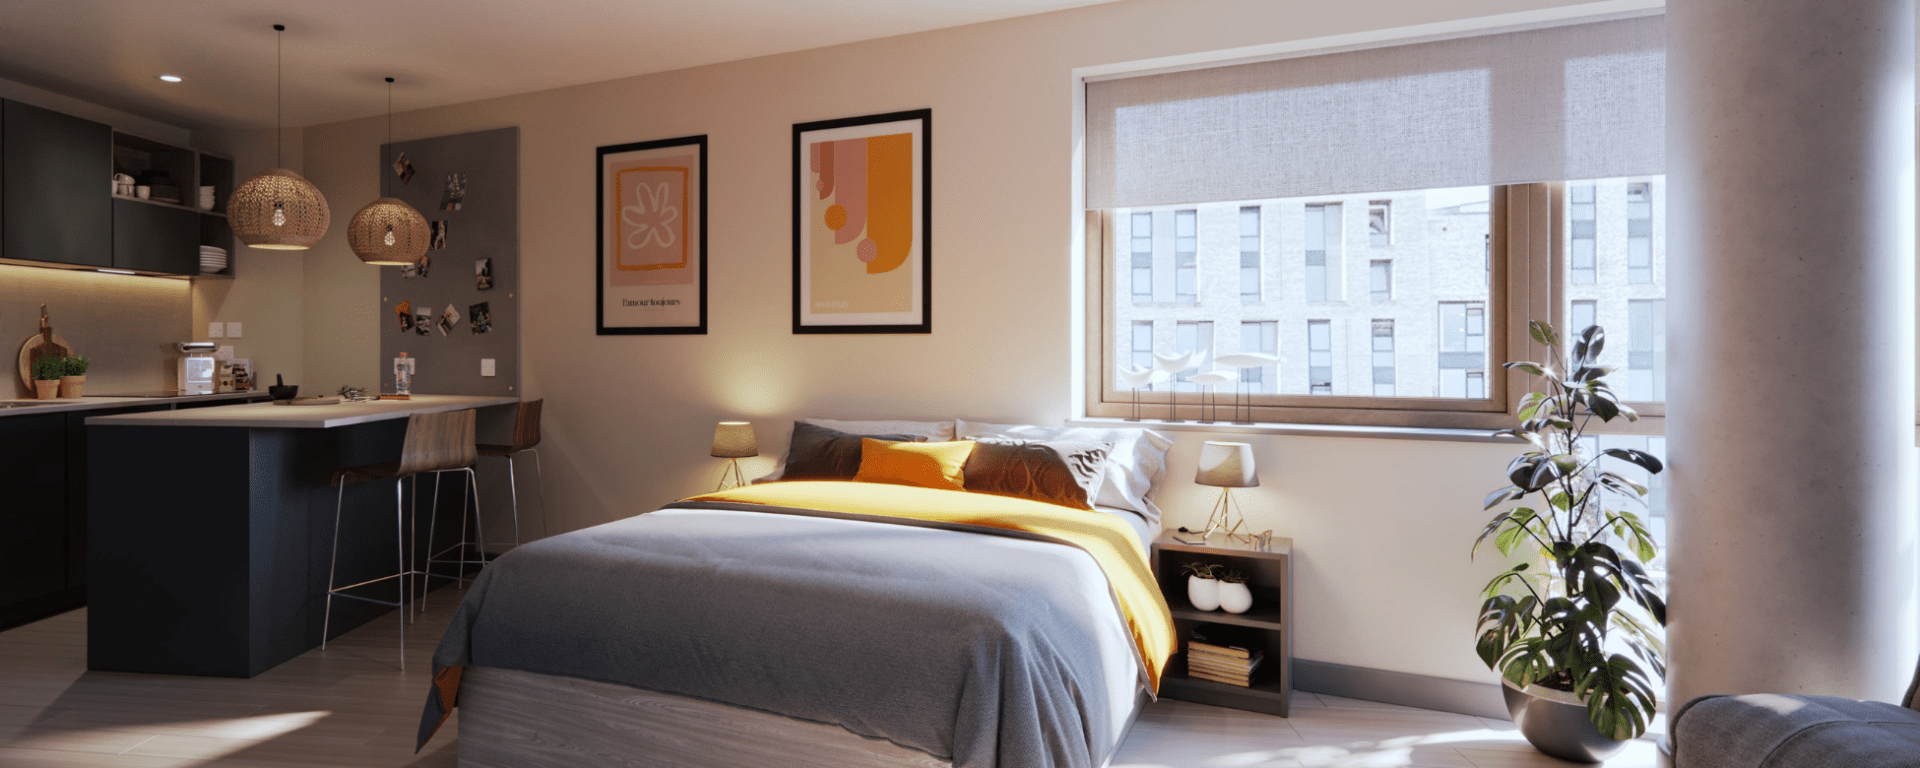 best student accommodation providers in the UK